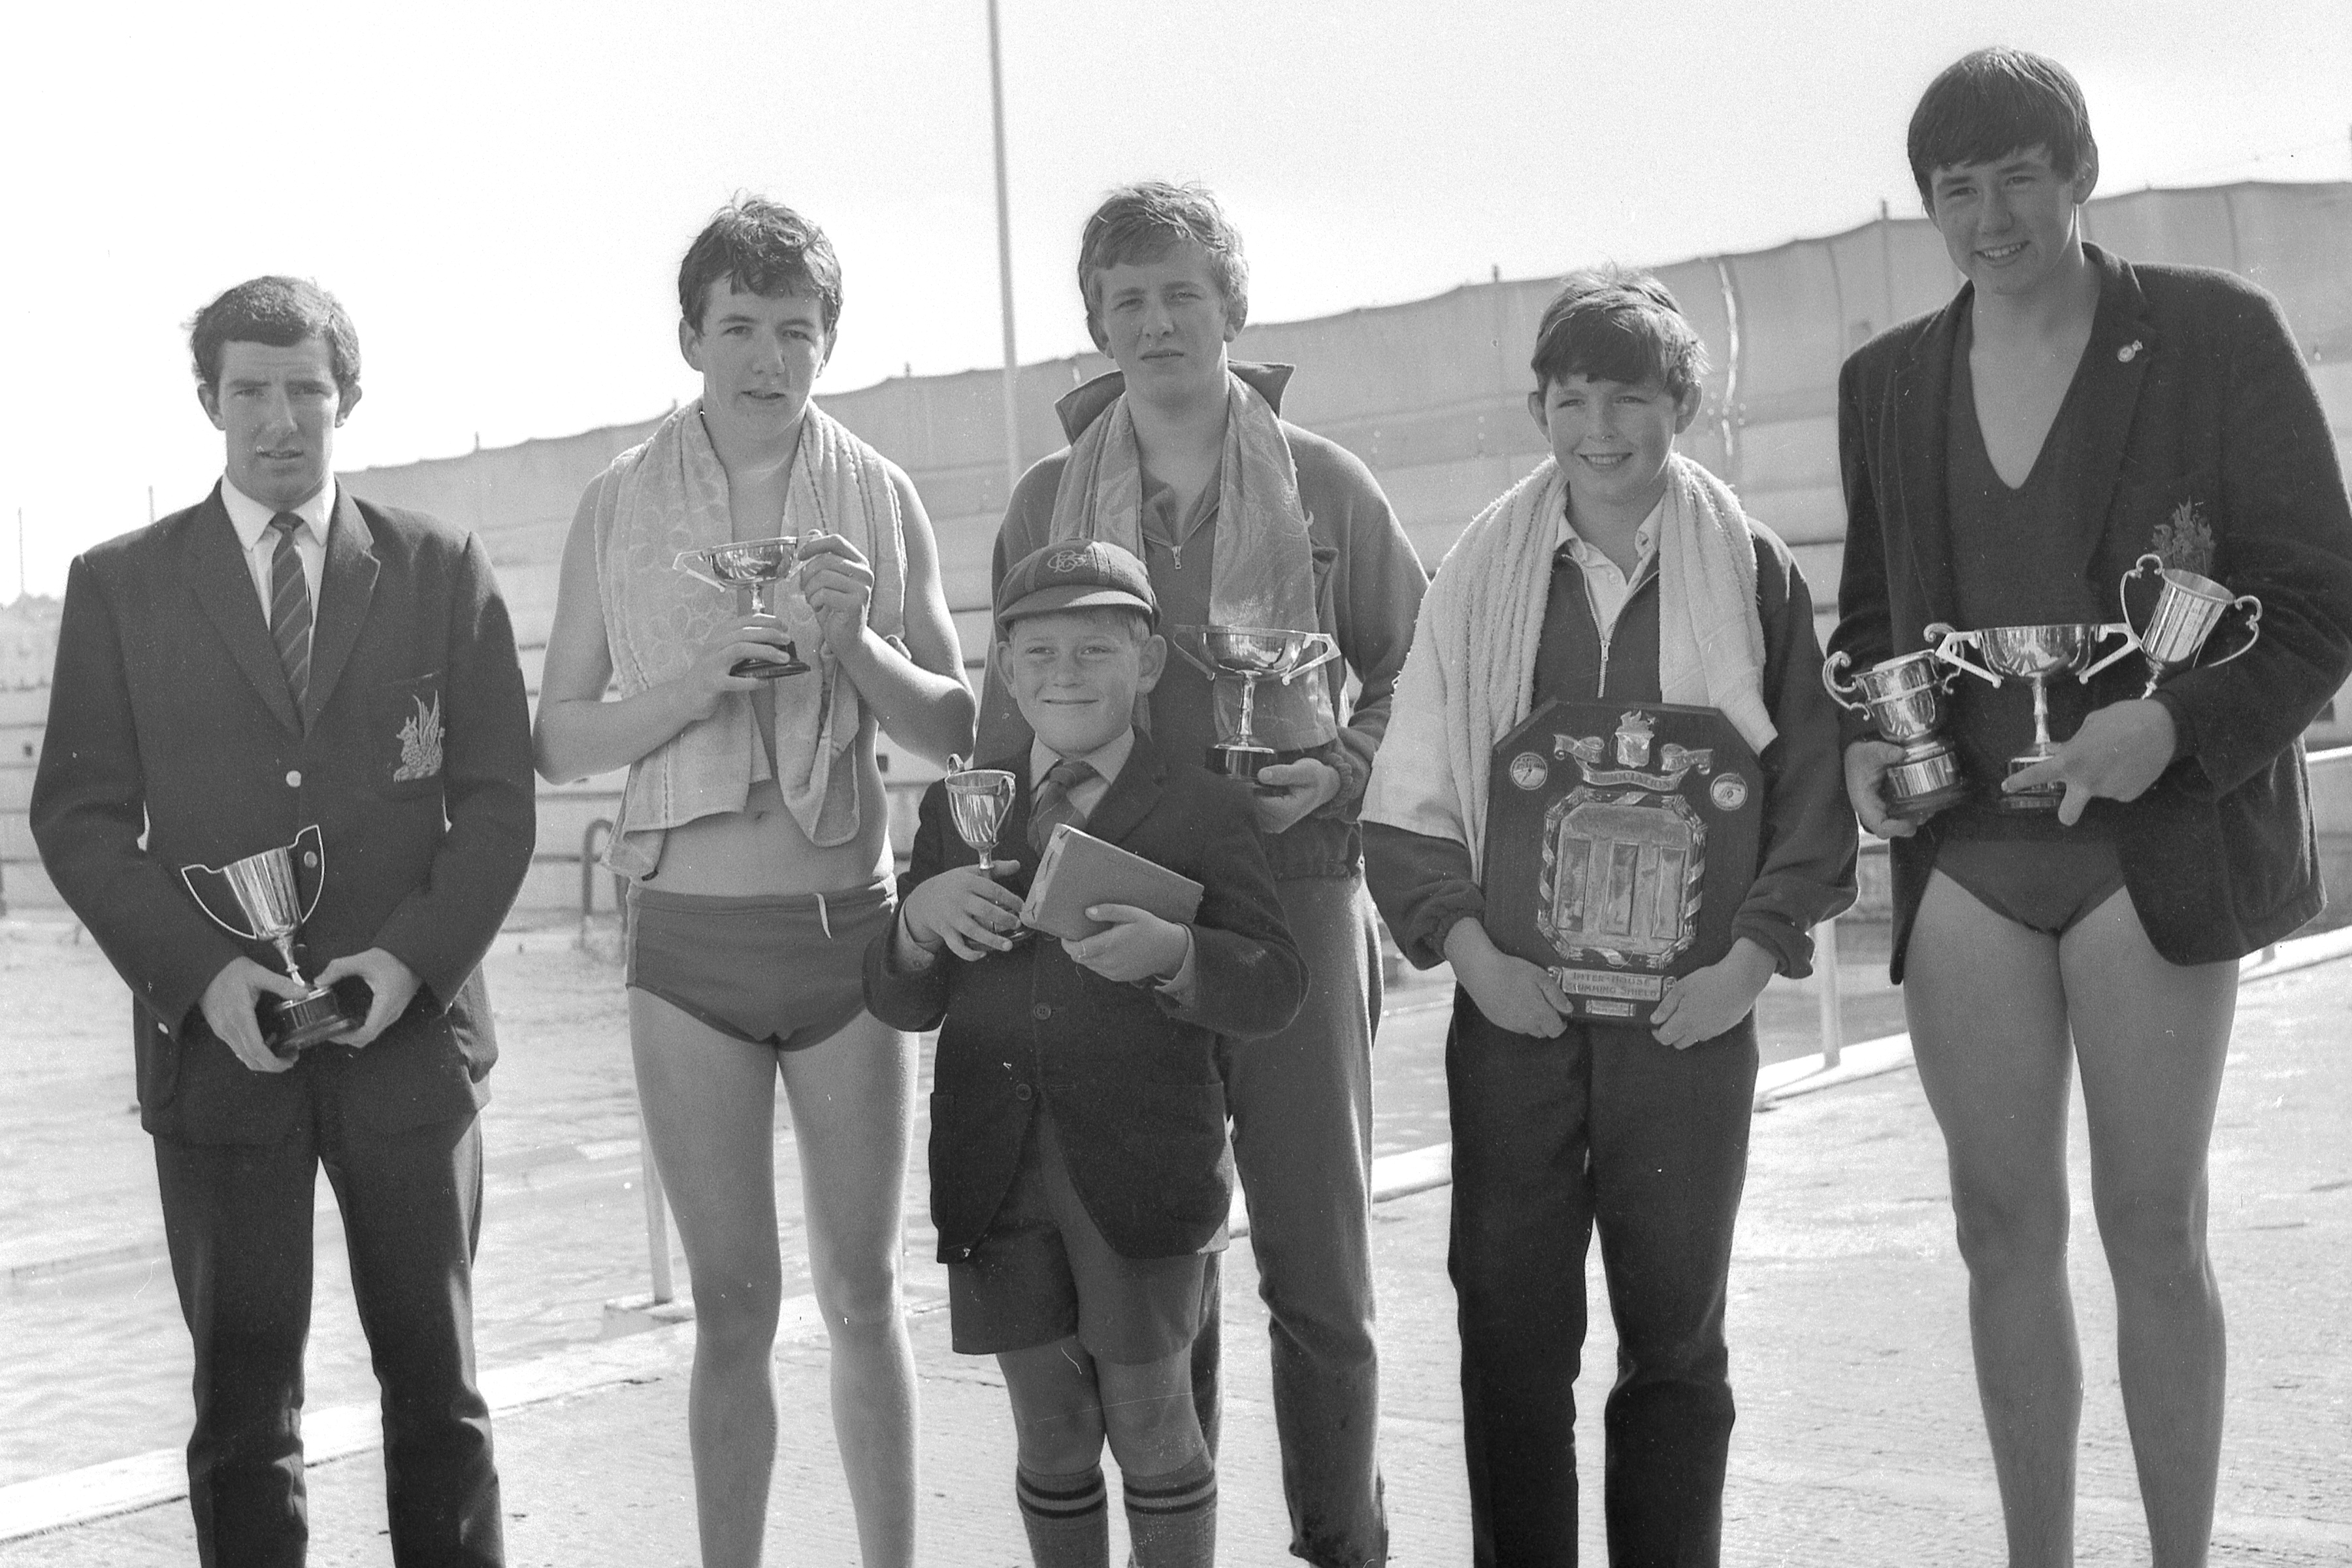 One of the few surviving photographs - taken by the County Down Spectator at the 1966 Gala - that features all the cups awarded for swimming. From left: W. R. Rowley (Breaststroke Cup); W. D. McKeown (Jamison Cup - Freestyle); R. H. Thompson (Jamison Cup - Freestyle, Connor House); R. A. Anderson (Diving Cup); D. Eadie (House Shield); and R. Whyte (Sir Walter Smiles Cup for top swimmer at the Gala, Butterfly Backstroke Cup and  Butterfly Cup).